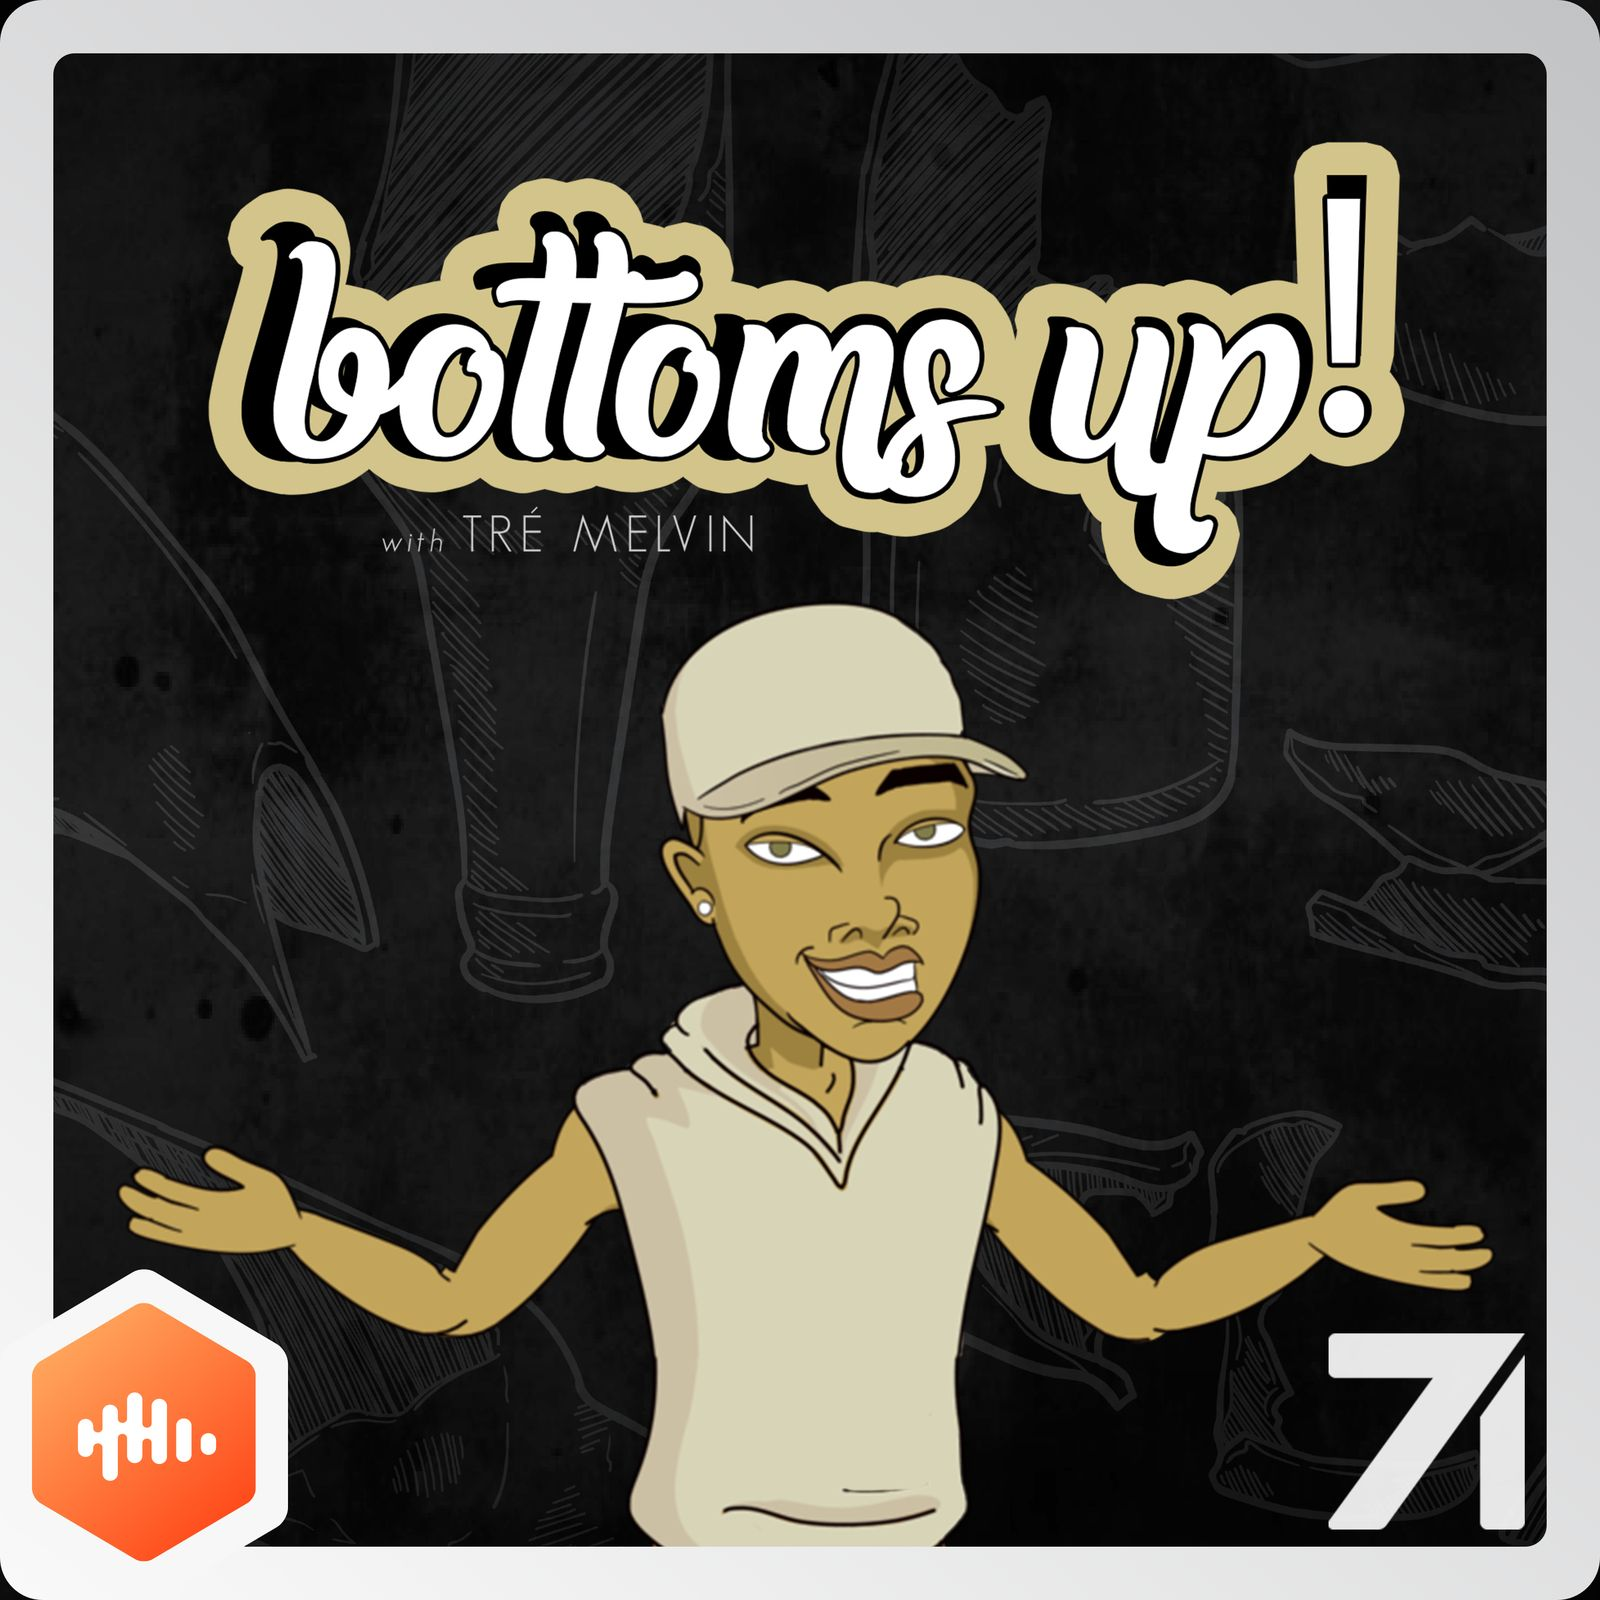 17: Yock on the Rocks (feat. Zach Campbell) - Bottoms Up! with Tré Melvin